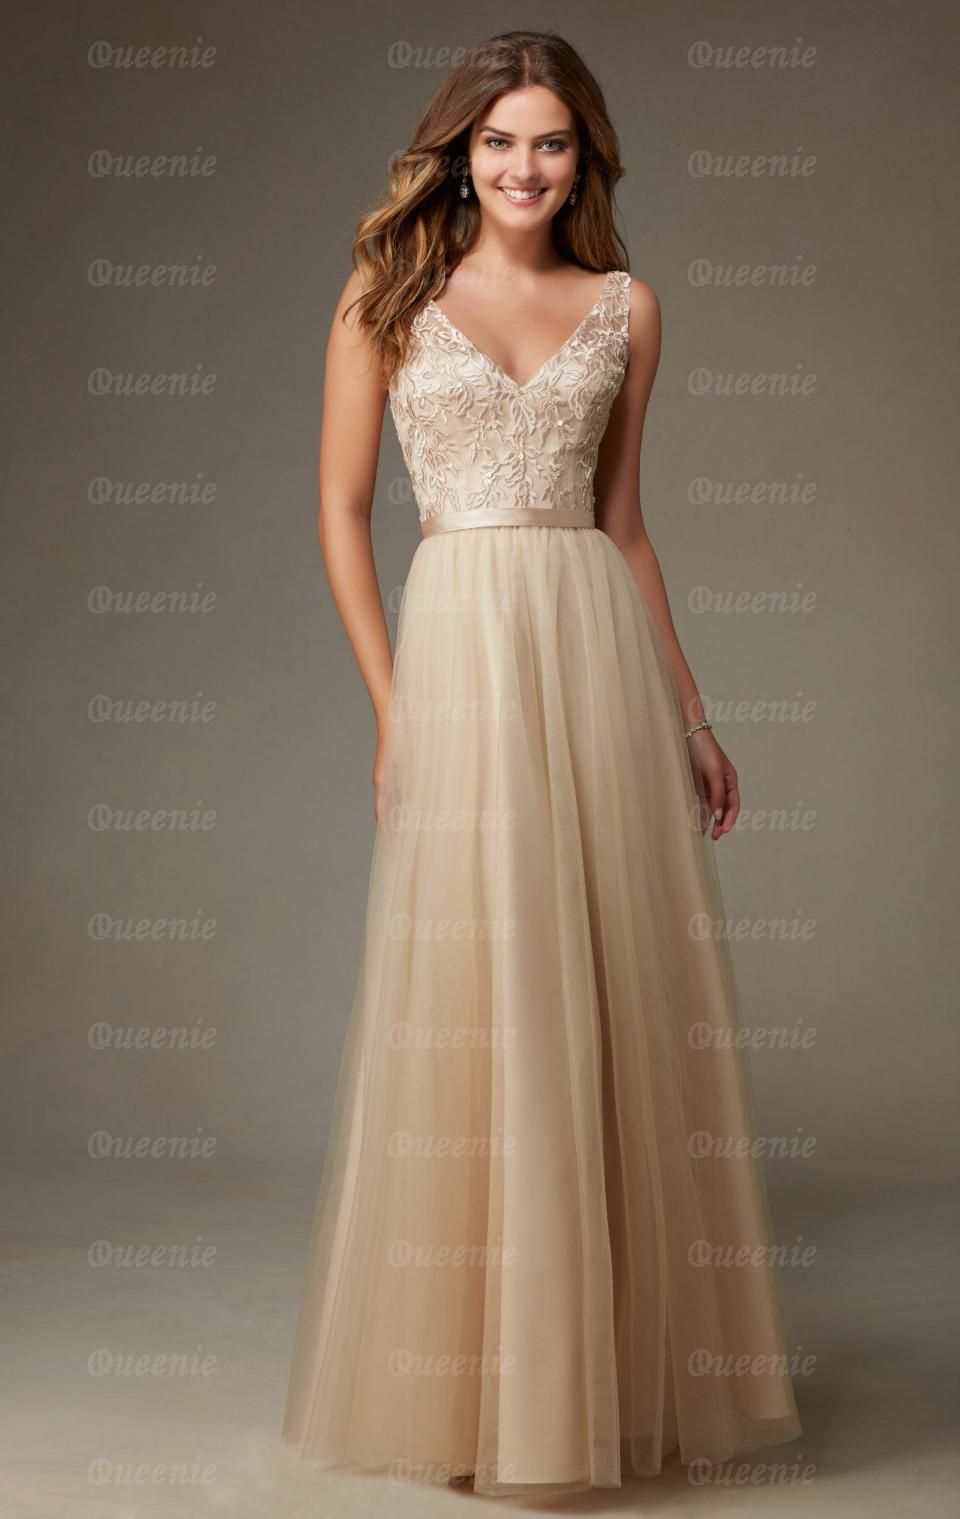 Stunning Champagne Bridesmaid Dress BNNCL0010-Bridesmaid UK ...